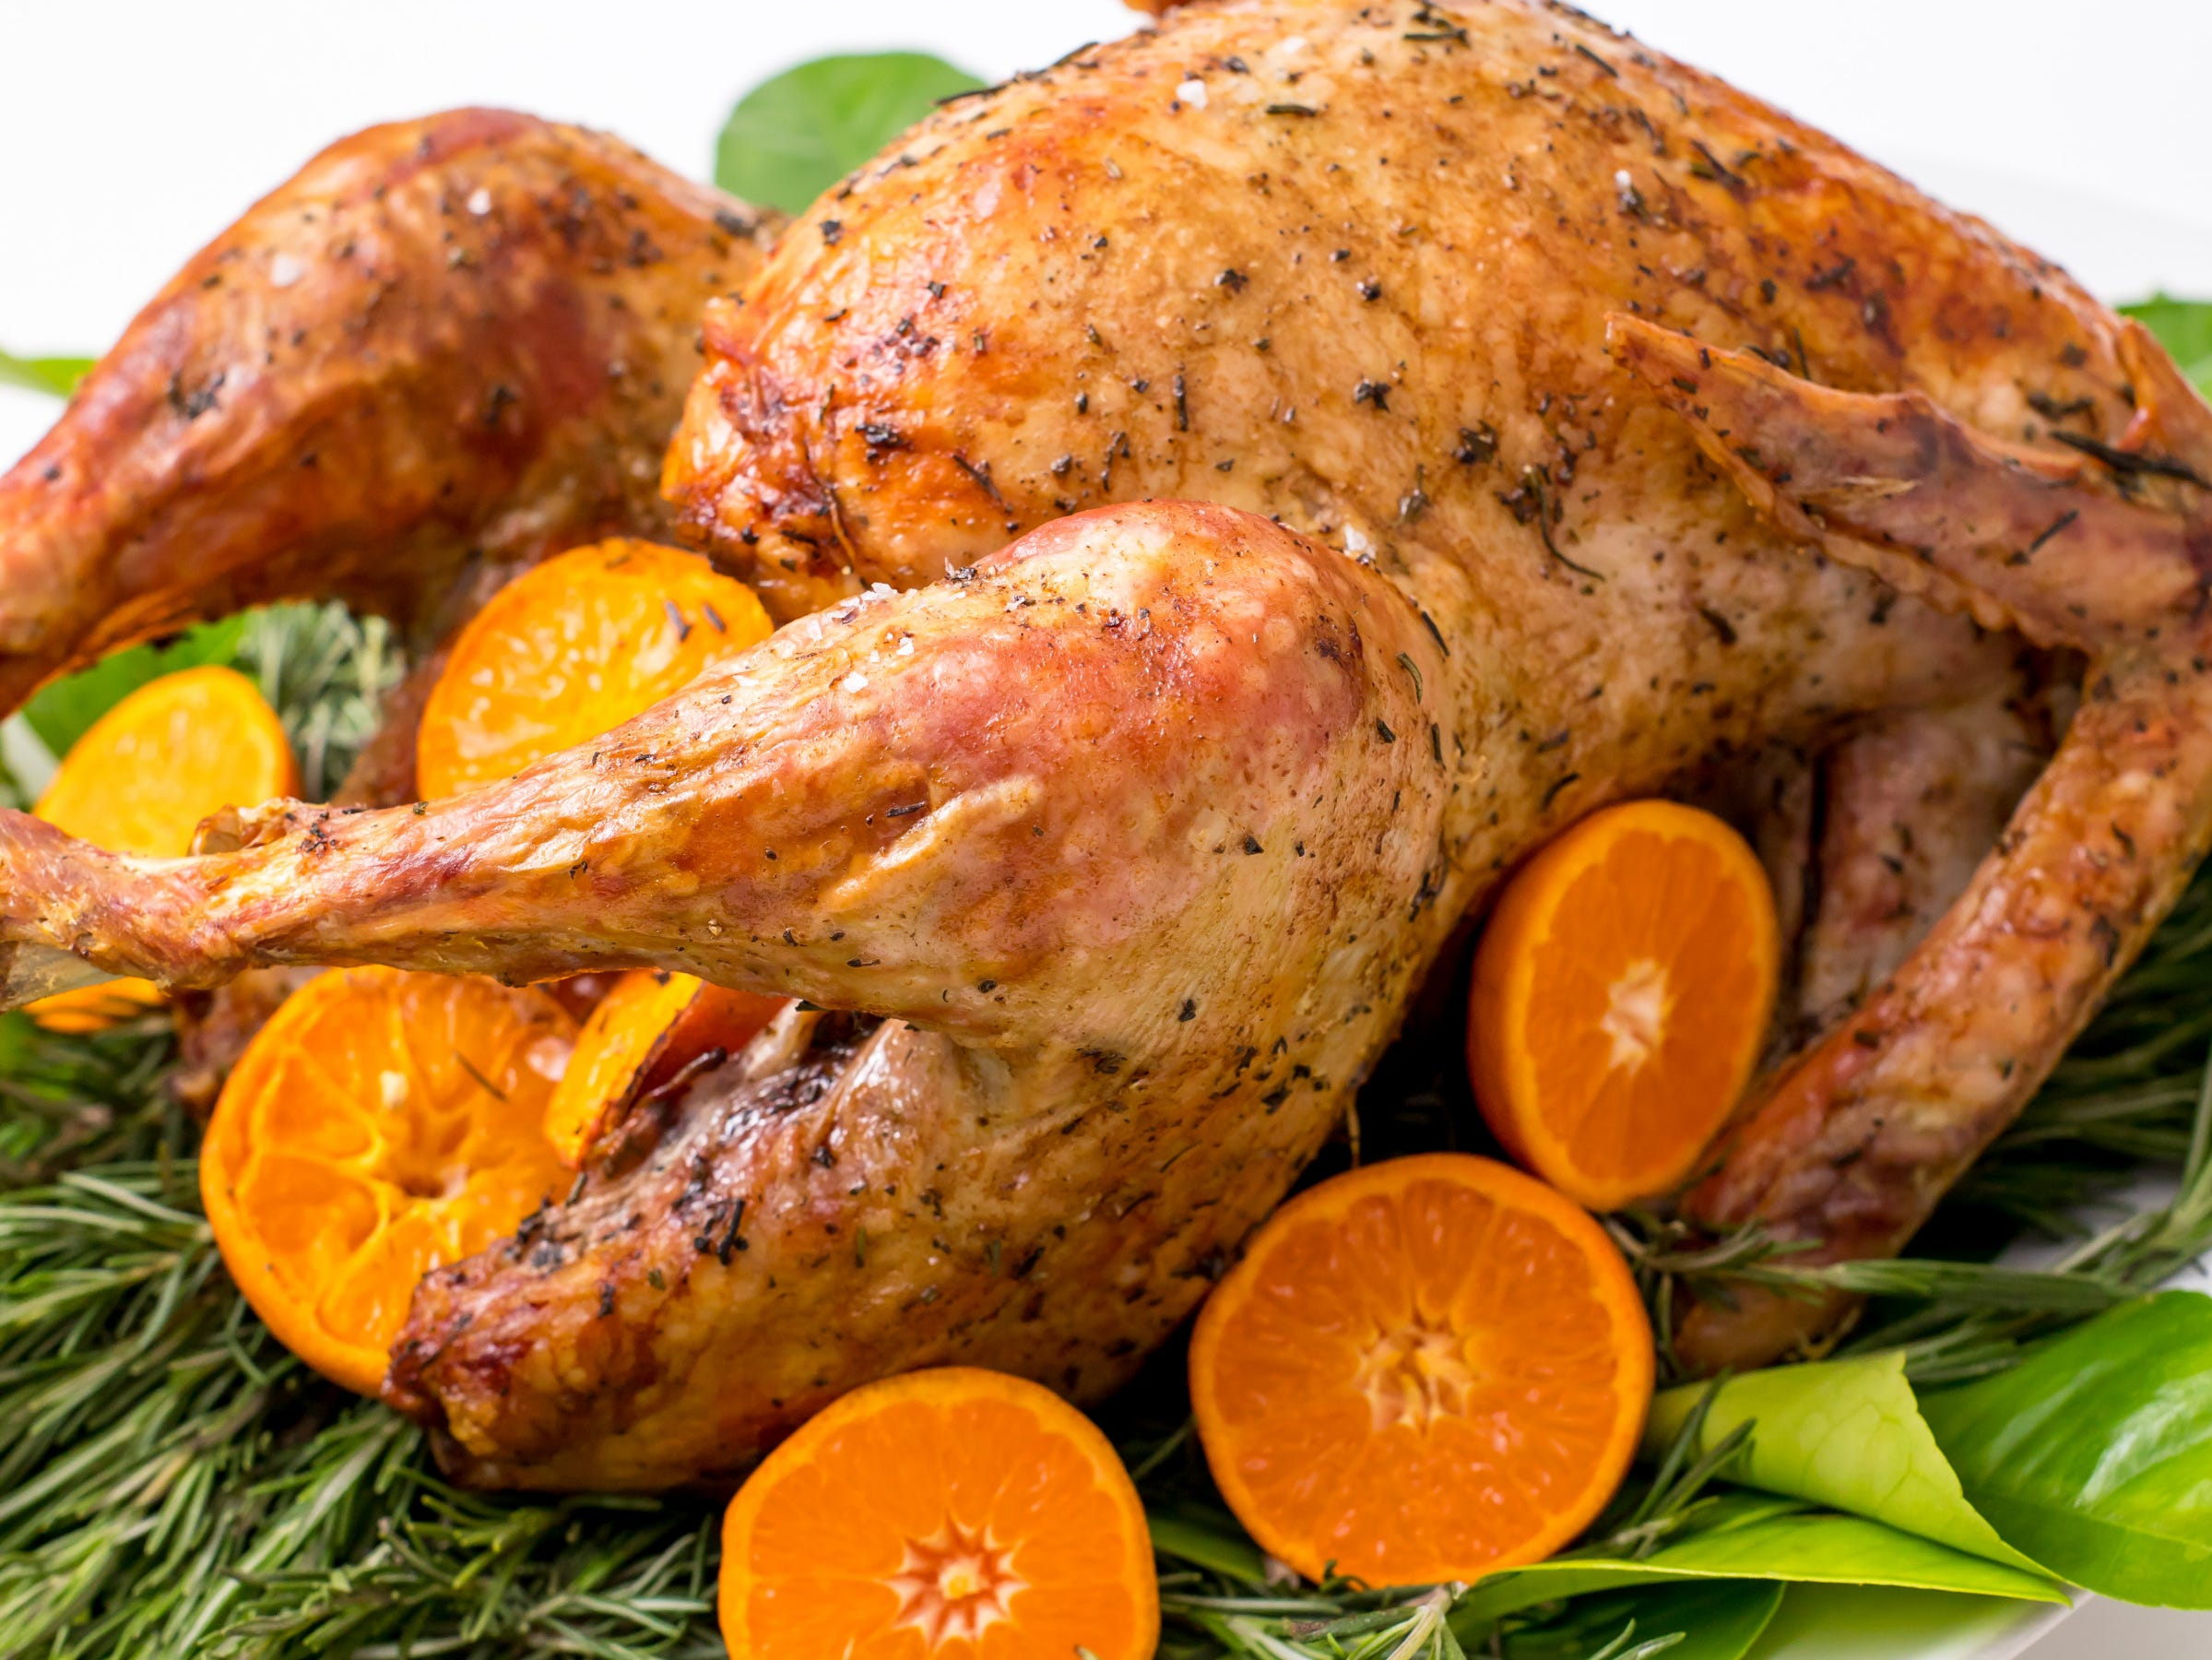 The best foods are simple foods. This recipe for grilled turkey with rosemary butter, inspired by Dinners for a Year and Beyond, shows you how to cook a turkey perfectly with just four simple ingredients.